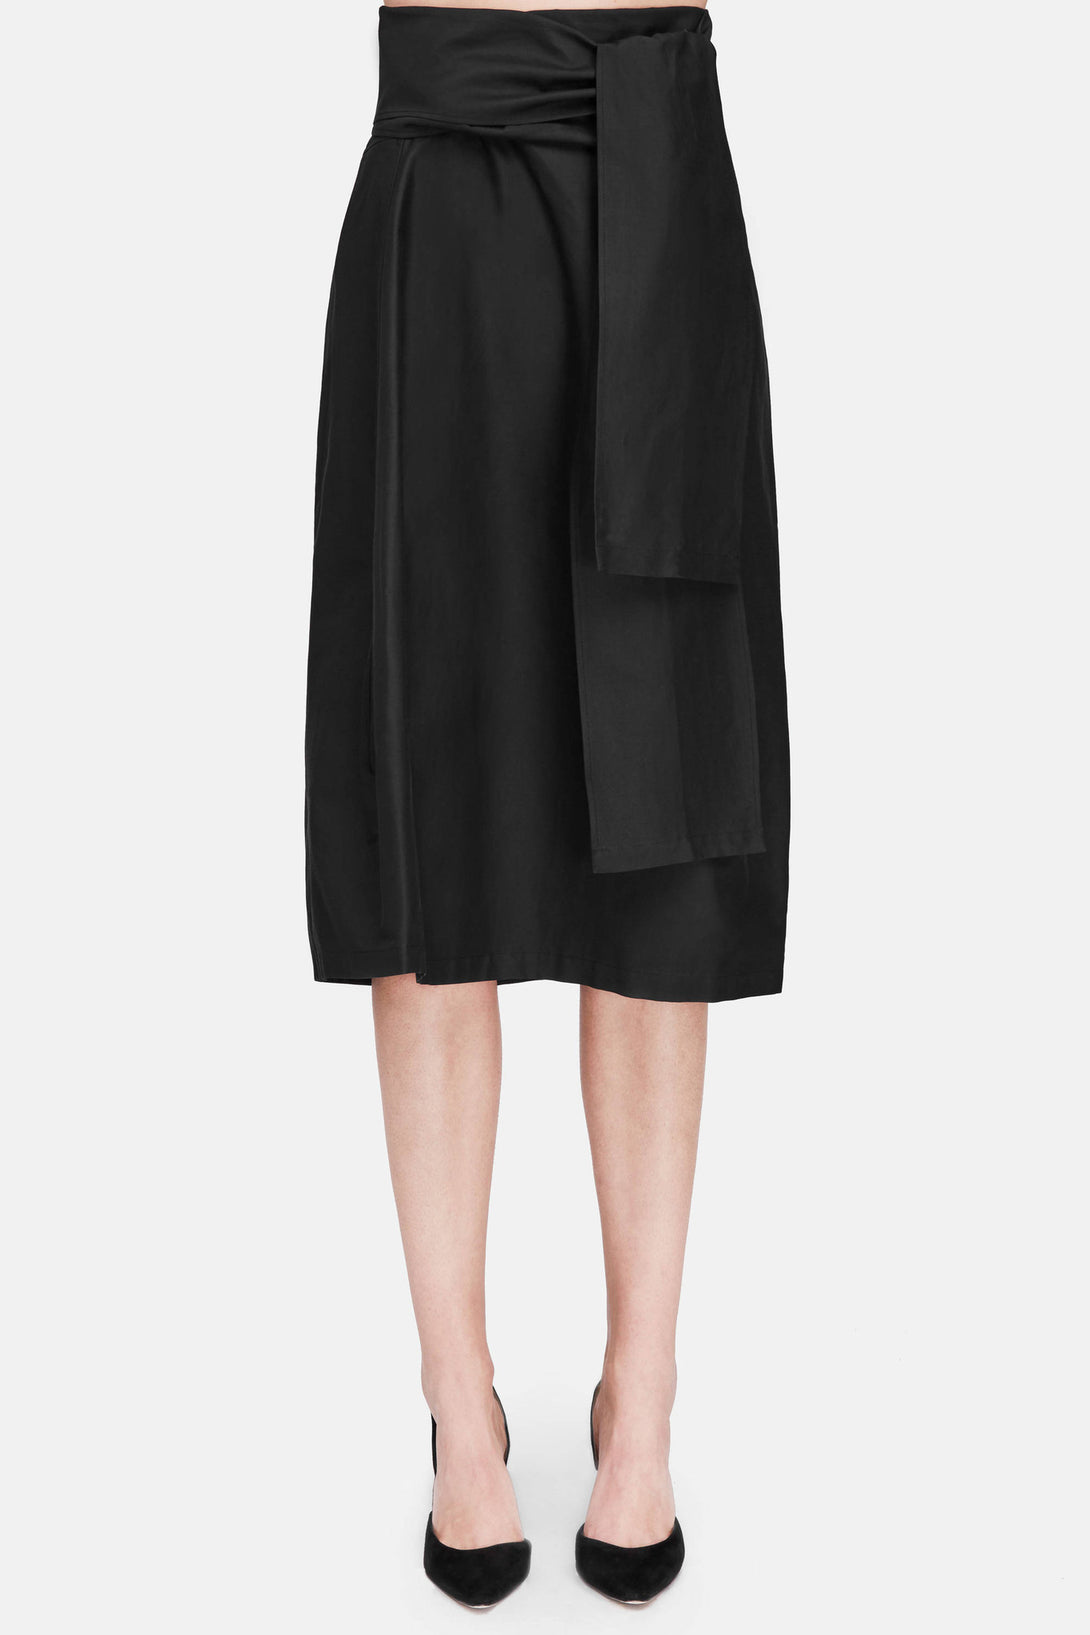 Sidi Wrap Skirt - Black